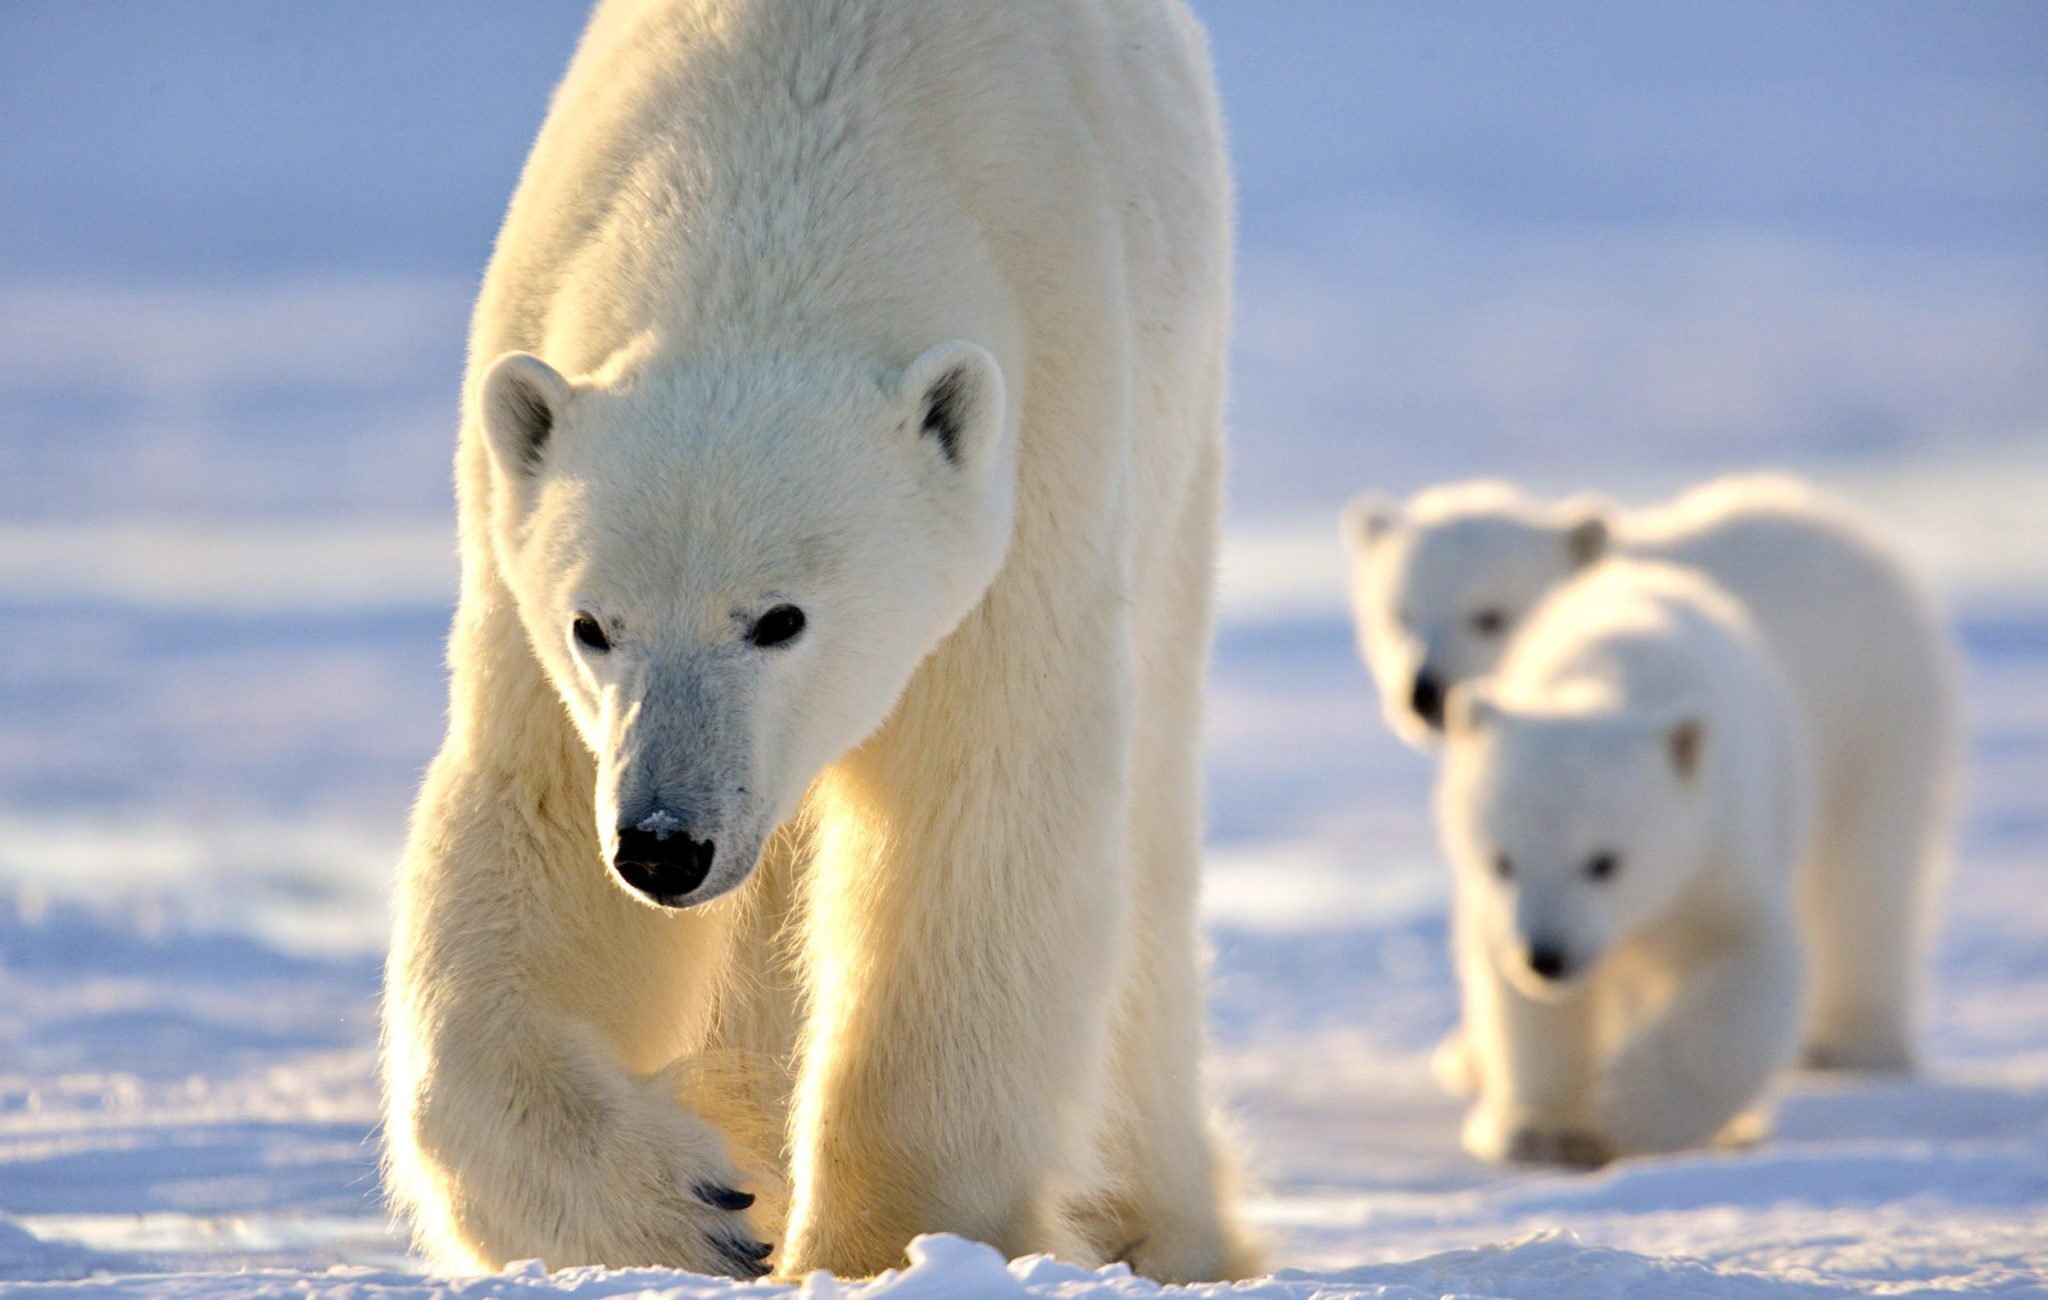 10 Fast Facts About Polar Bears